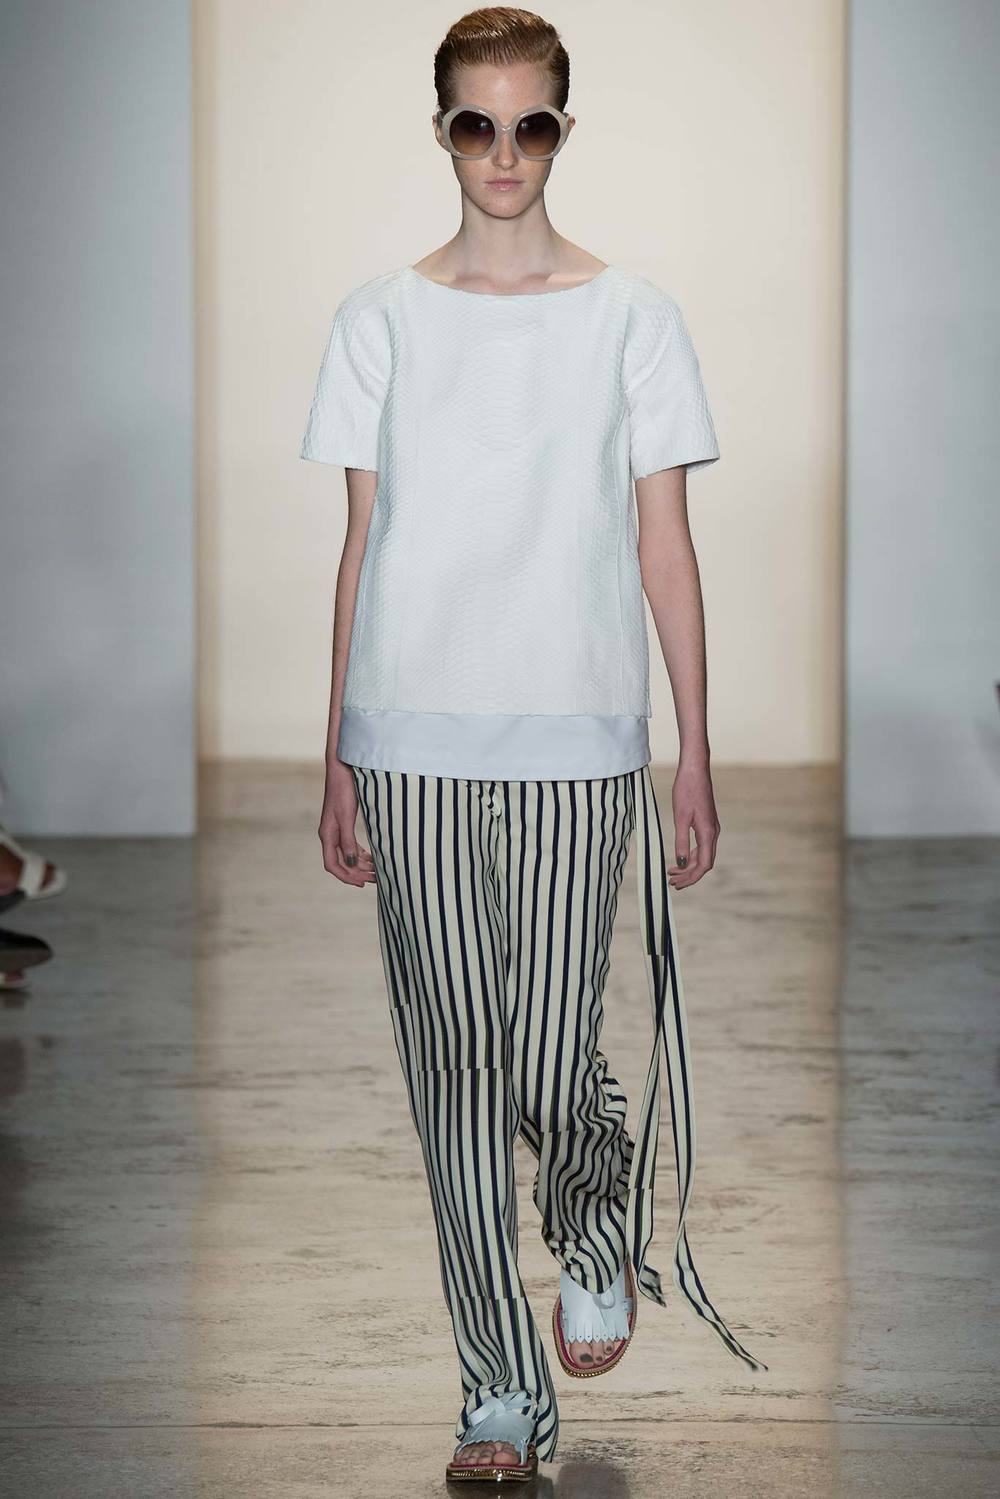 Peter Som Spring 2015 Ready to Wear Collection